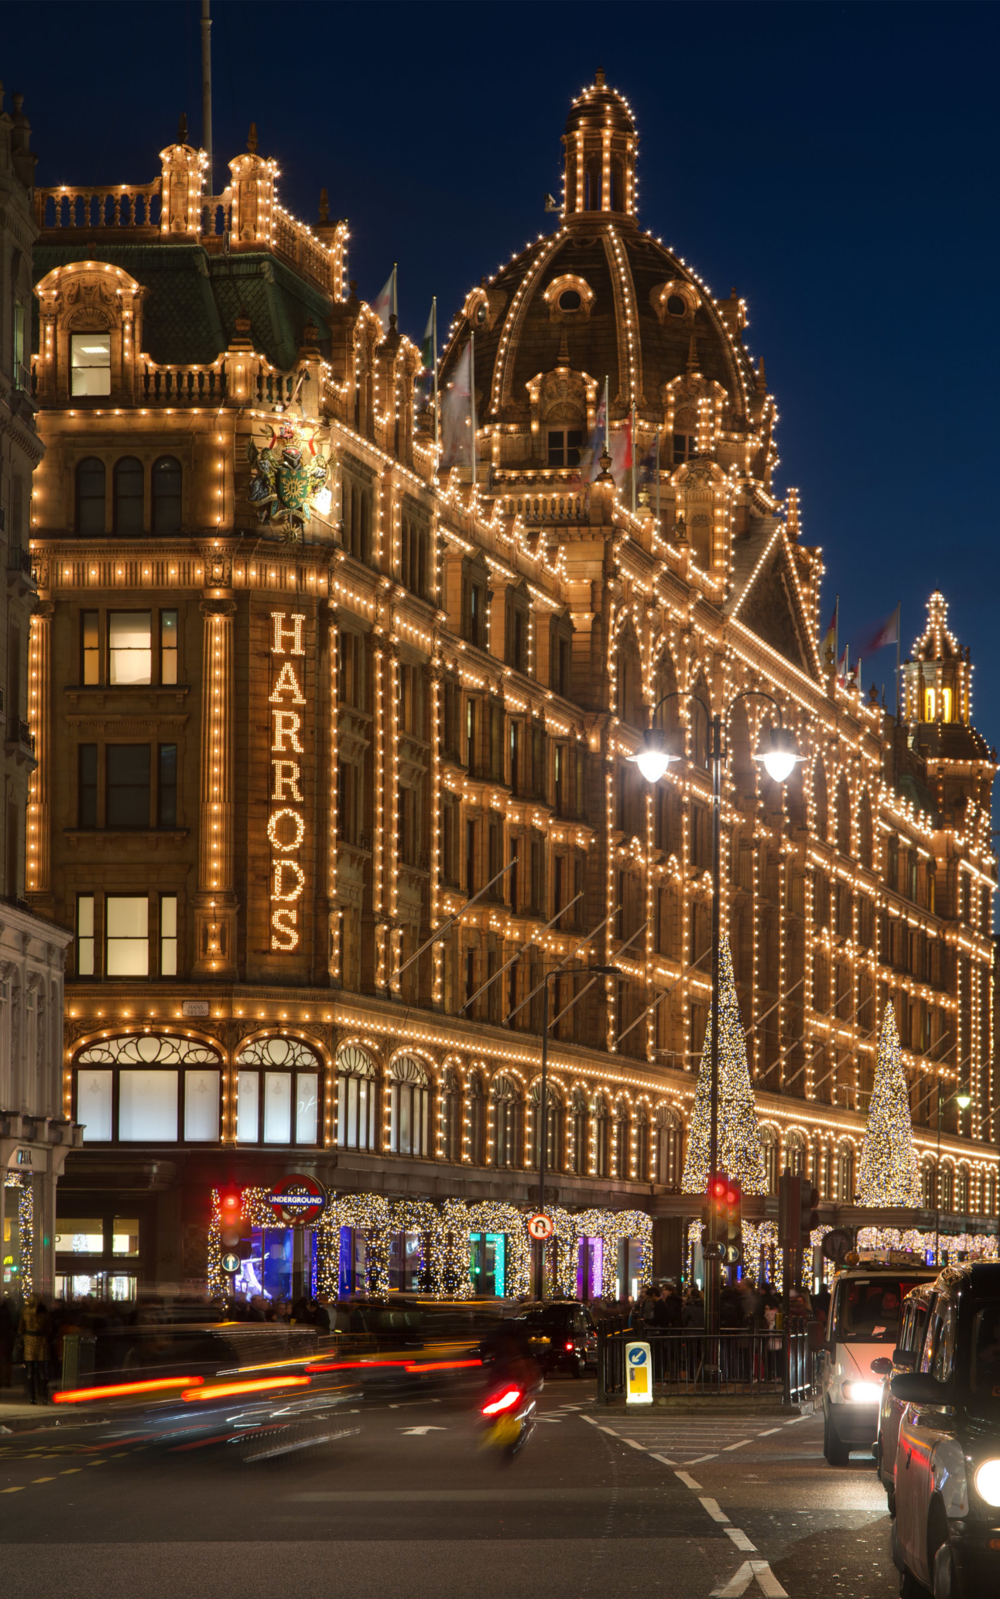 Harrods_at_Night,_London_-_Nov_2012.jpg